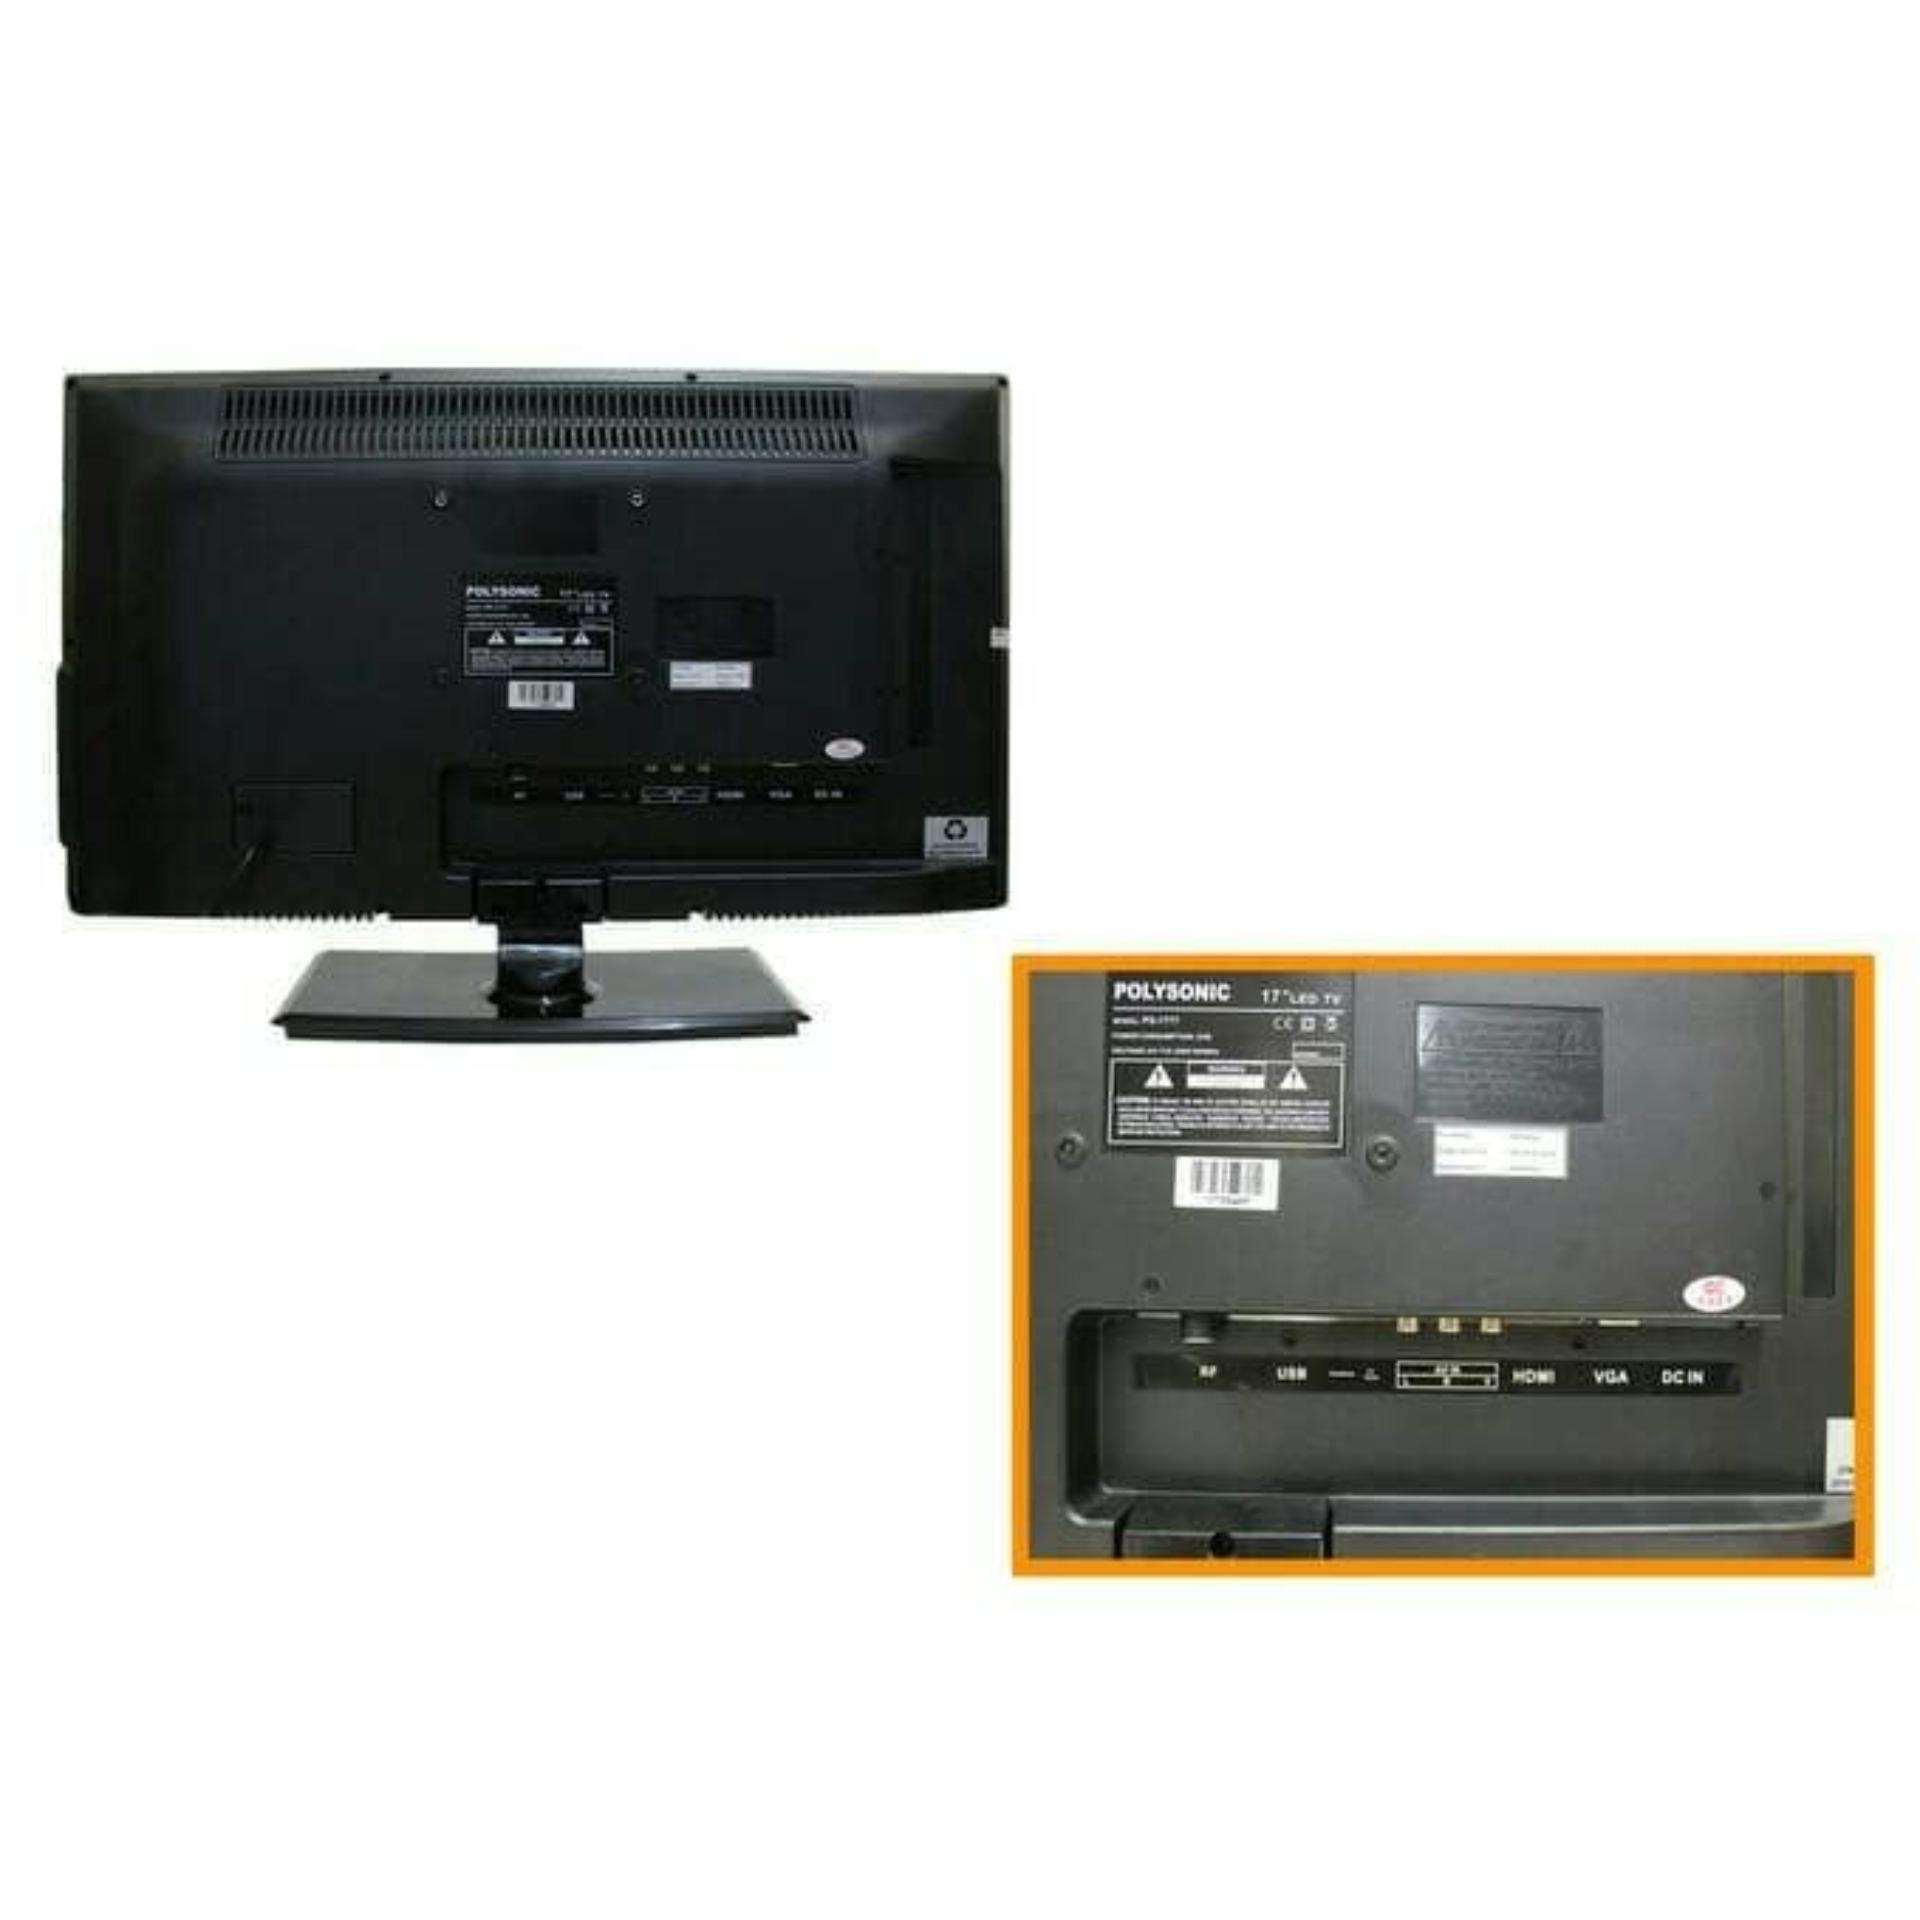 LED TV 19 inch Polysonic PS1892 Wide-Promo .